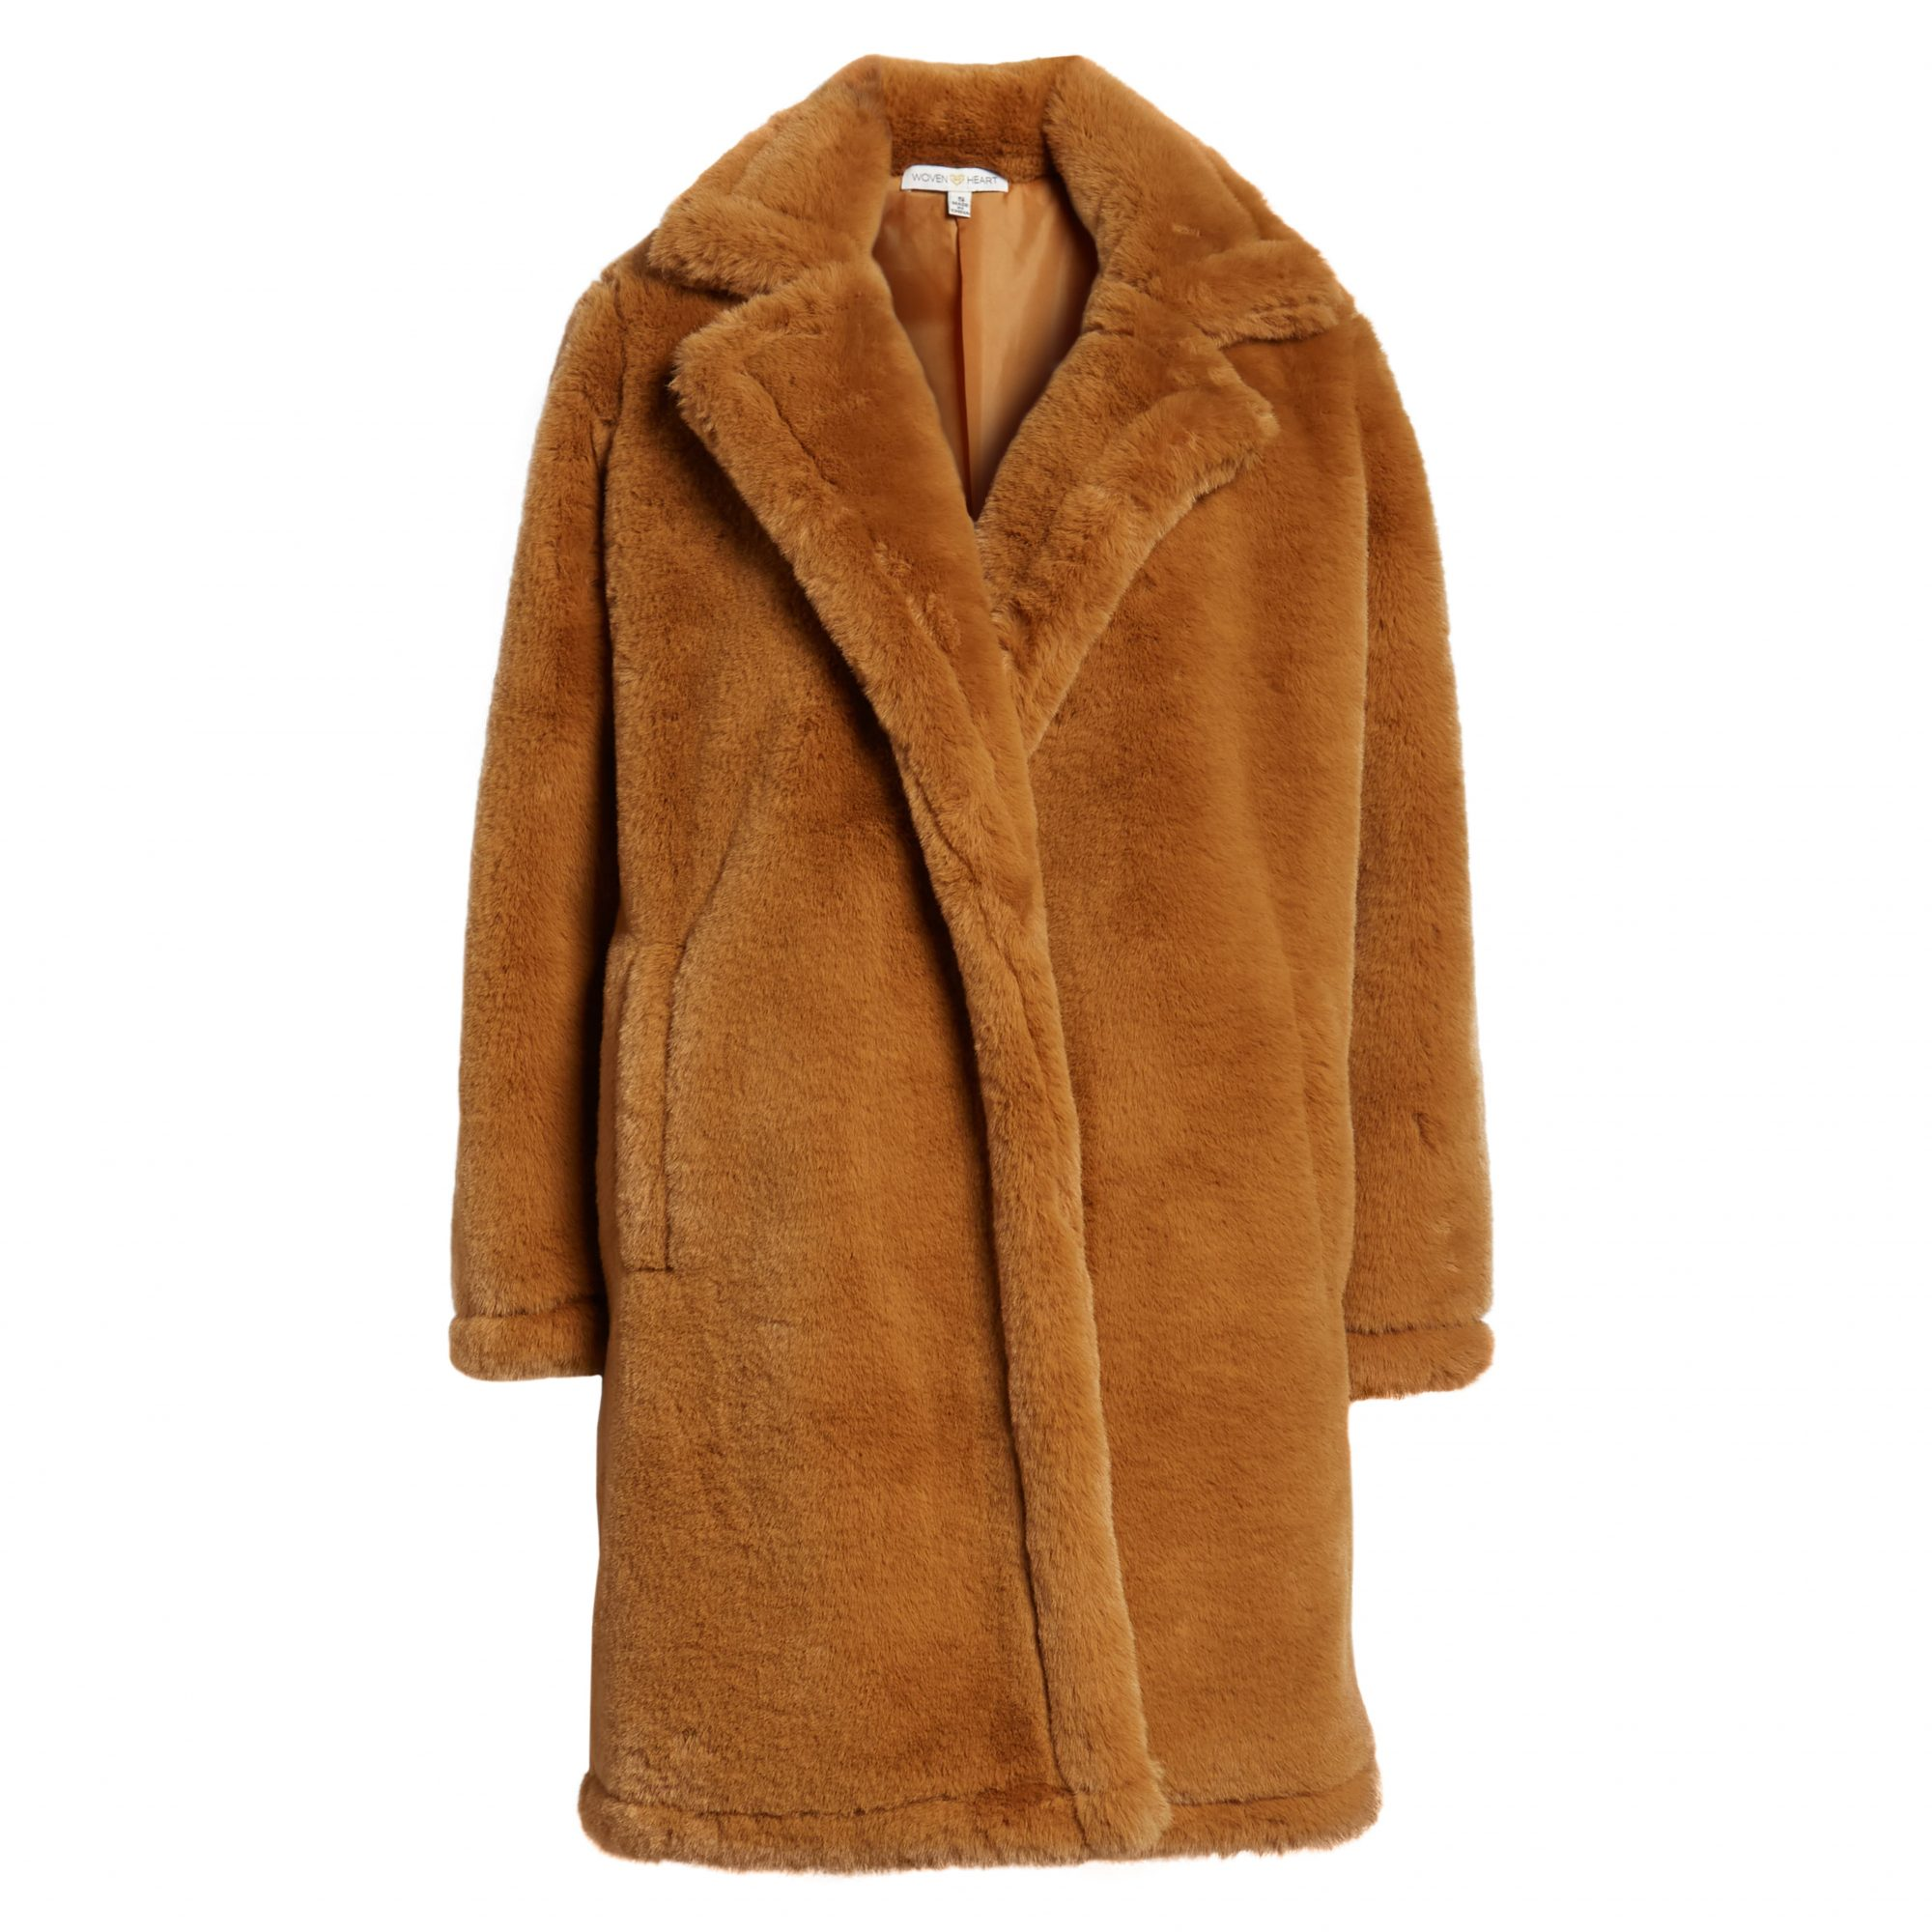 Woven Heart Faux Fur Coat